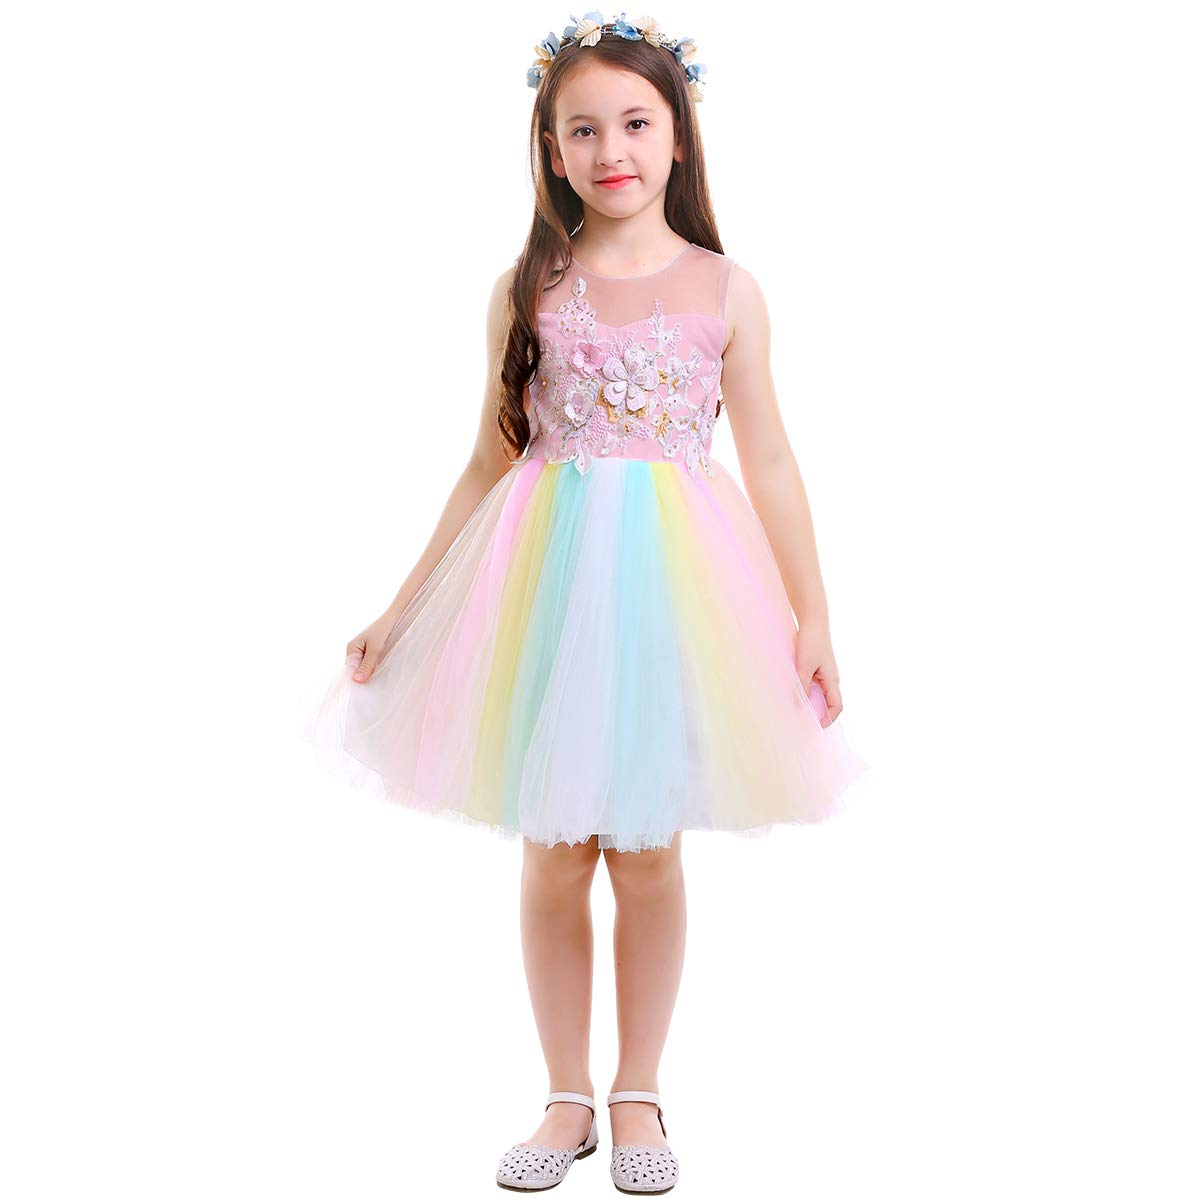 24a03345ac5e99 Amazon.com: Flower Girls Unicorn Rainbow Tulle Dress Birthday Party Pageant Kids  Princess Embroidery Floral Evening Gown Costume: Clothing